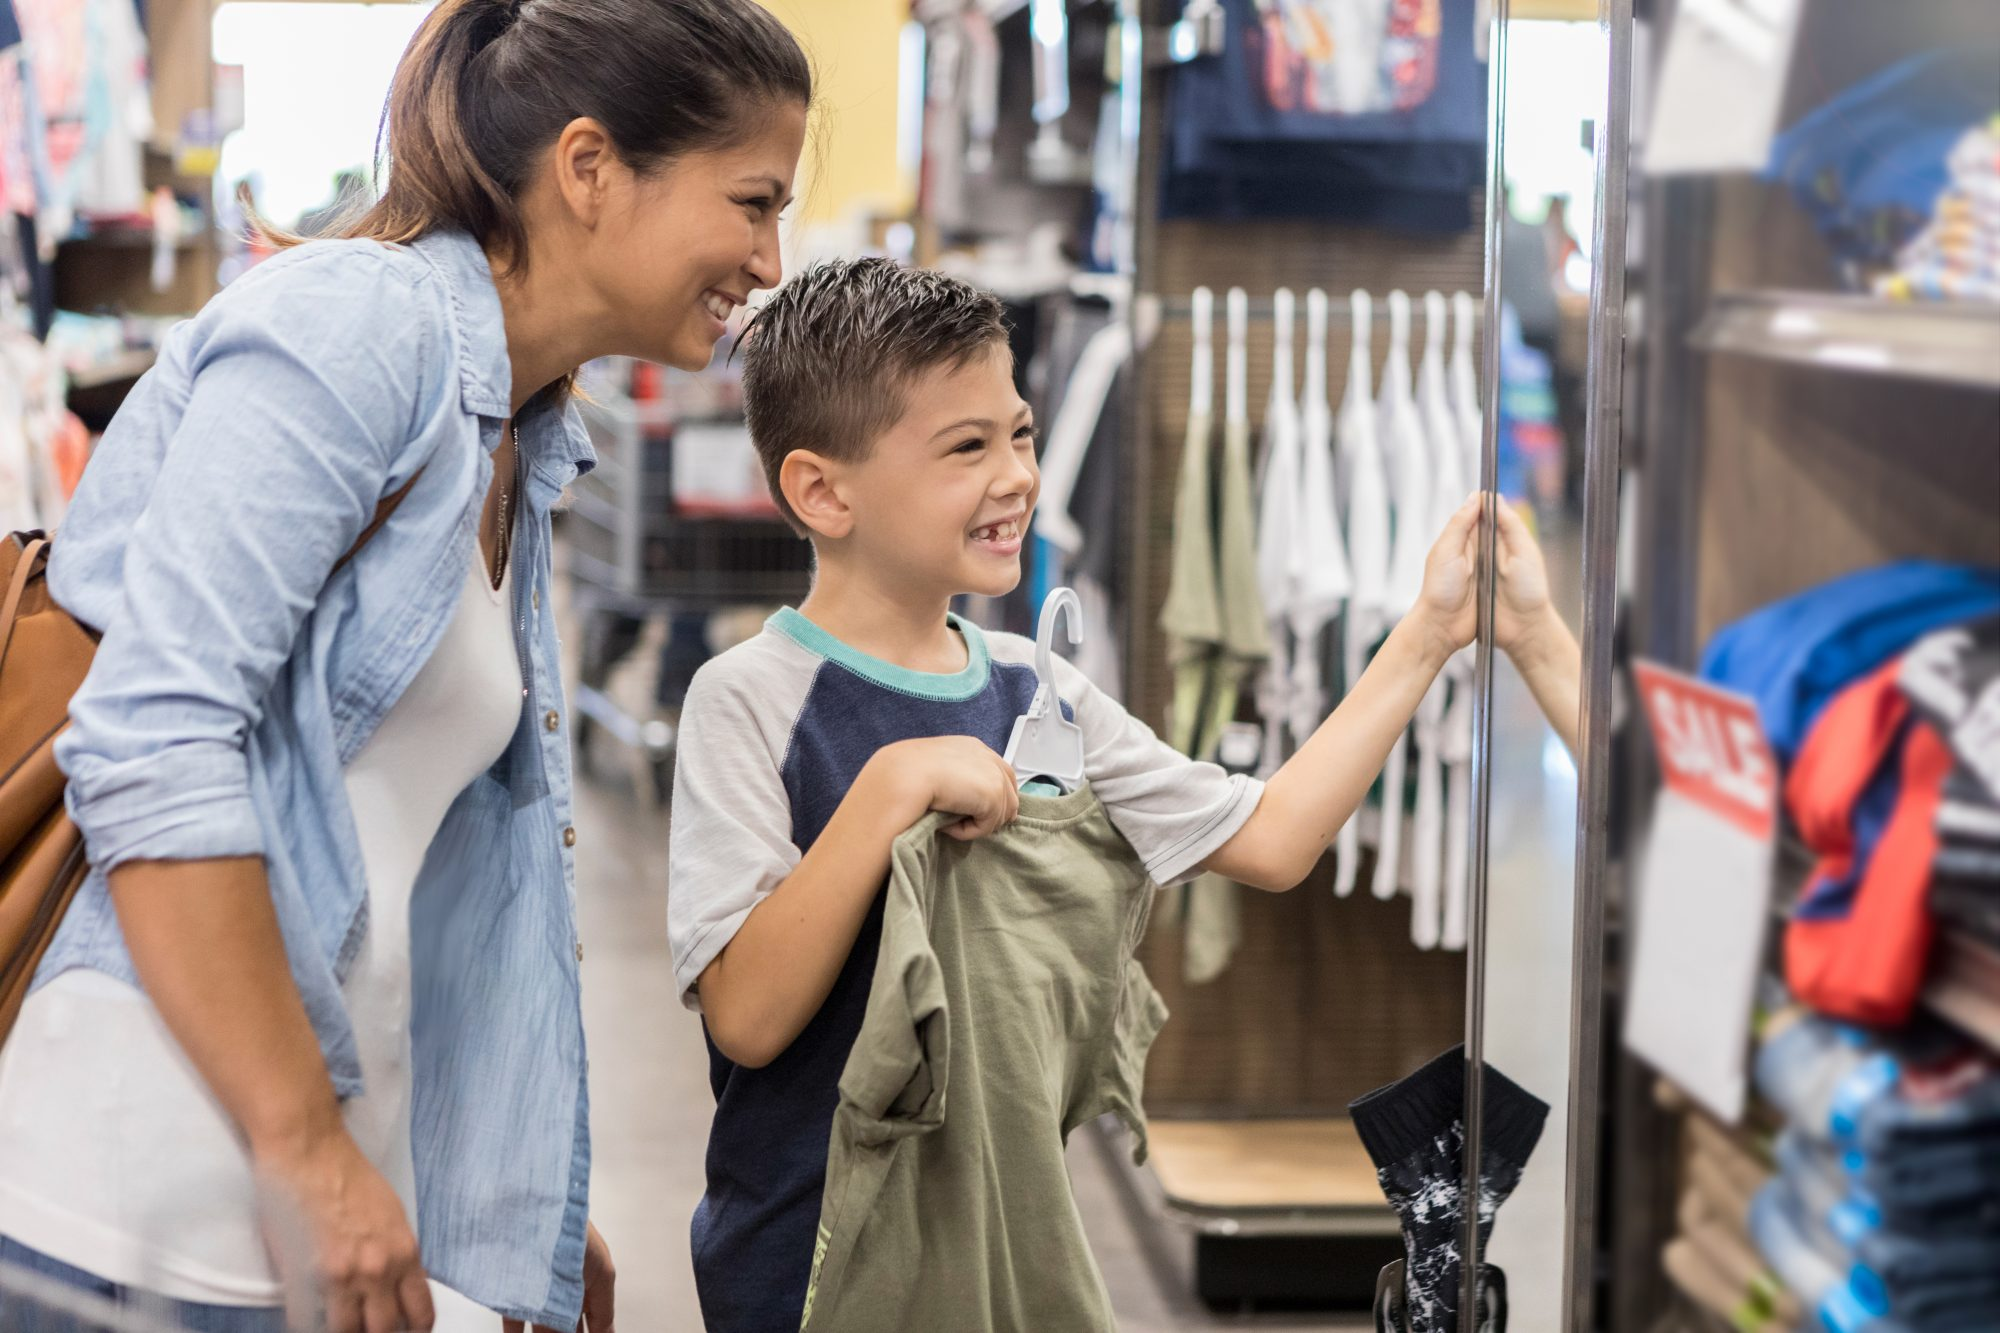 11 Ways to Save on Back-To-School Shopping